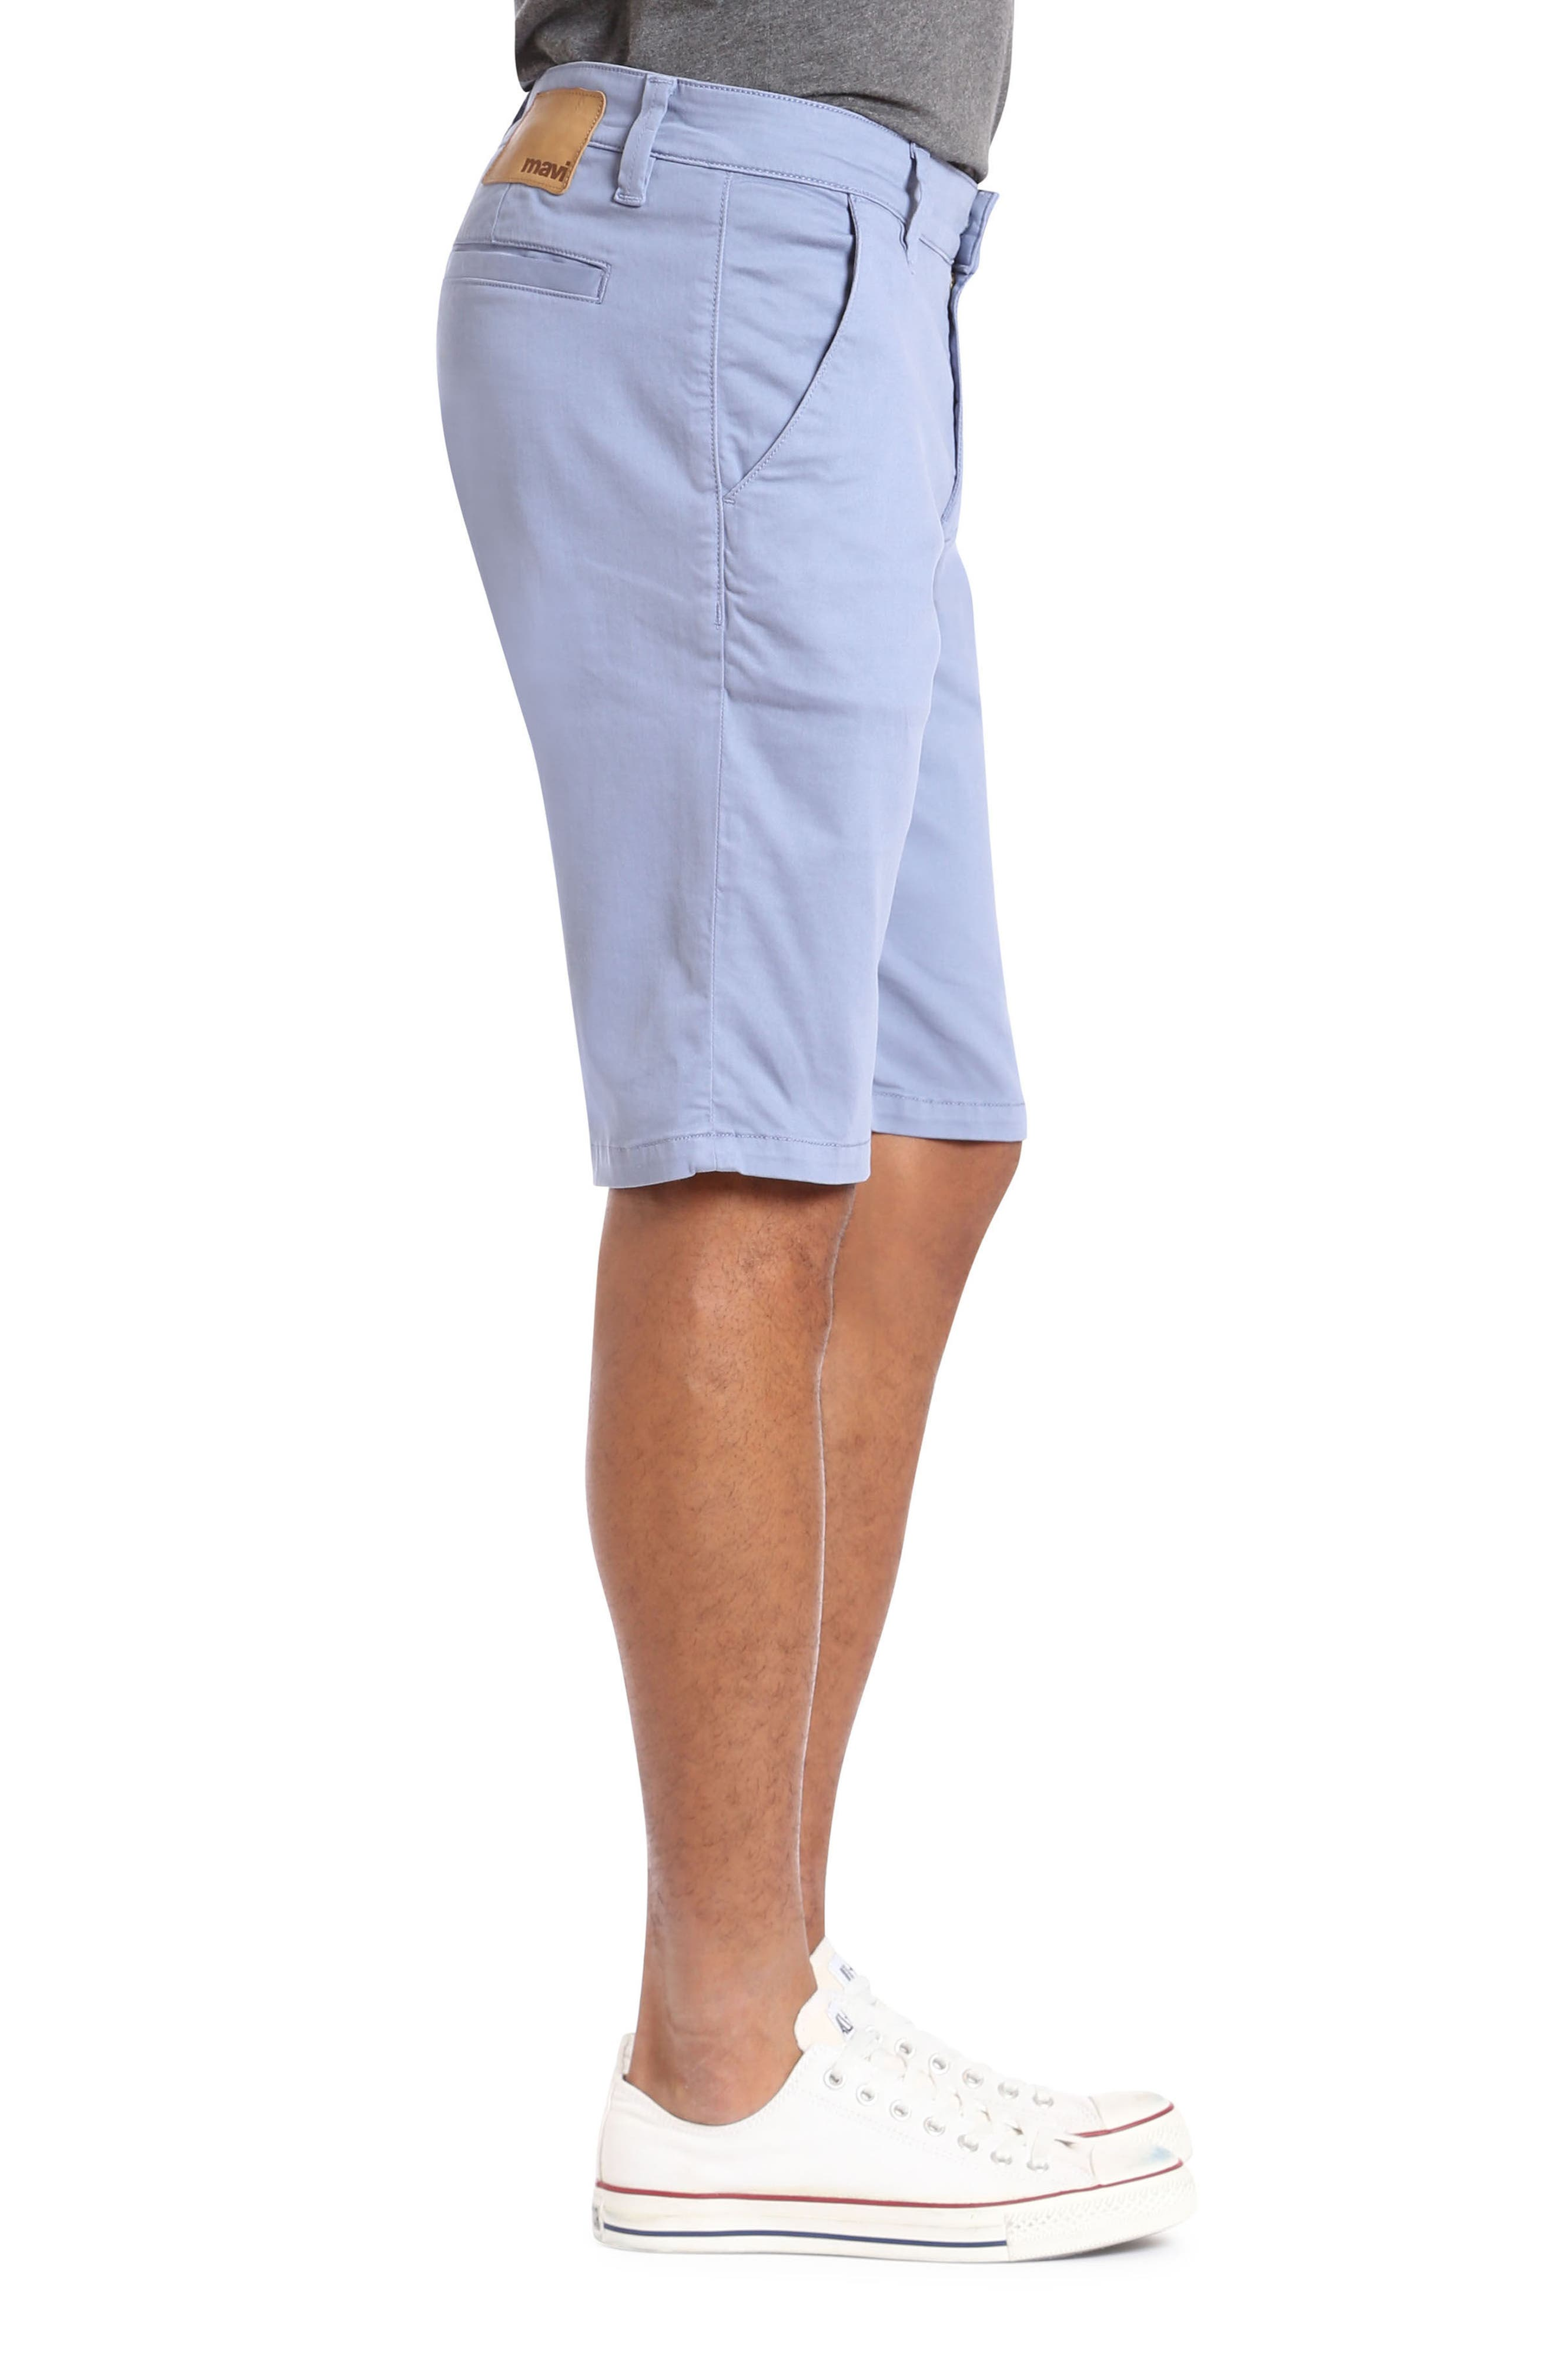 Jacob Twill Shorts,                             Alternate thumbnail 3, color,                             Stone Washed Twill